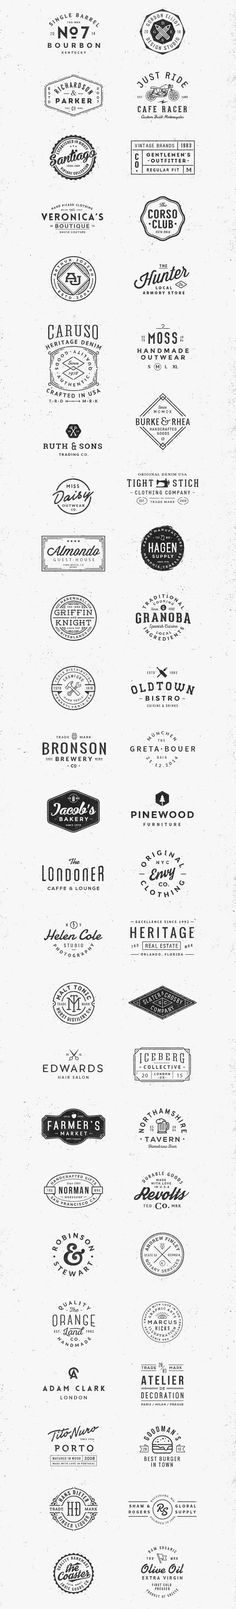 The bundle includes 50 high quality vintage logos for Adobe Photoshop and Illustrator.